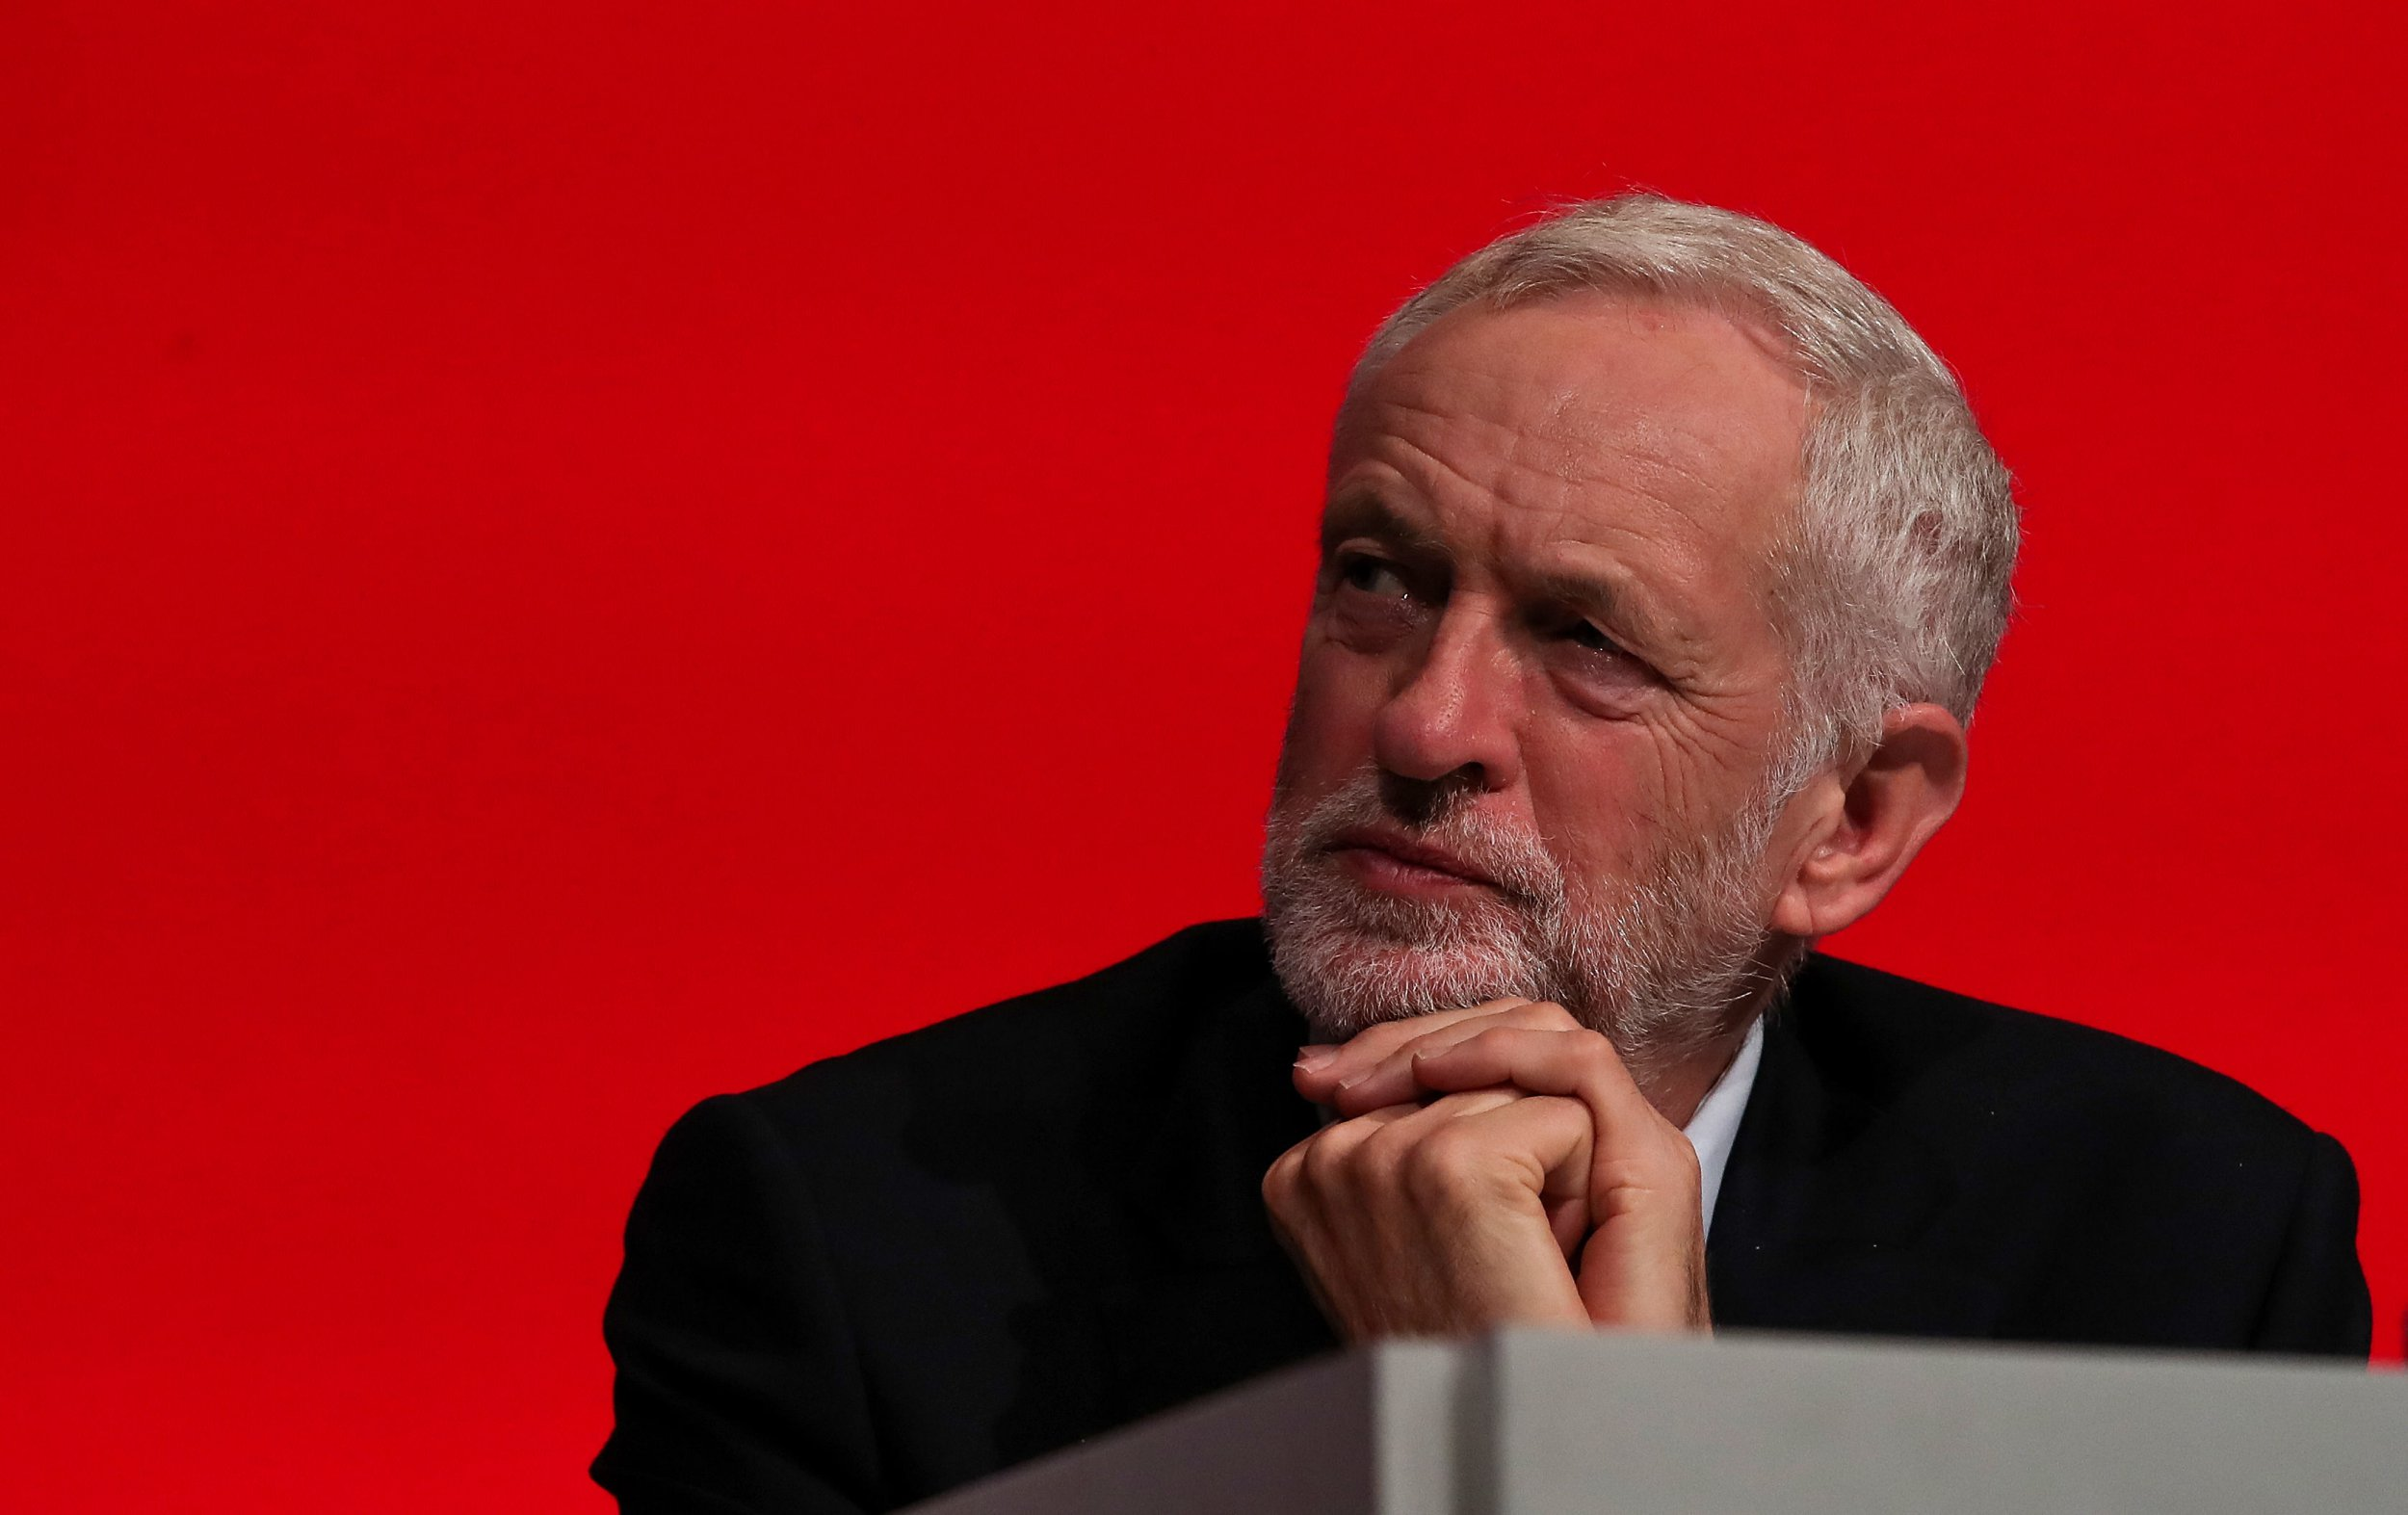 Labour leader Jeremy Corbyn during the Labour Party's annual conference at the Arena and Convention Centre (ACC), in Liverpool. PRESS ASSOCIATION Photo. Picture date: Tuesday September 25, 2018. See PA LABOUR stories. Photo credit should read: Peter Byrne/PA Wire